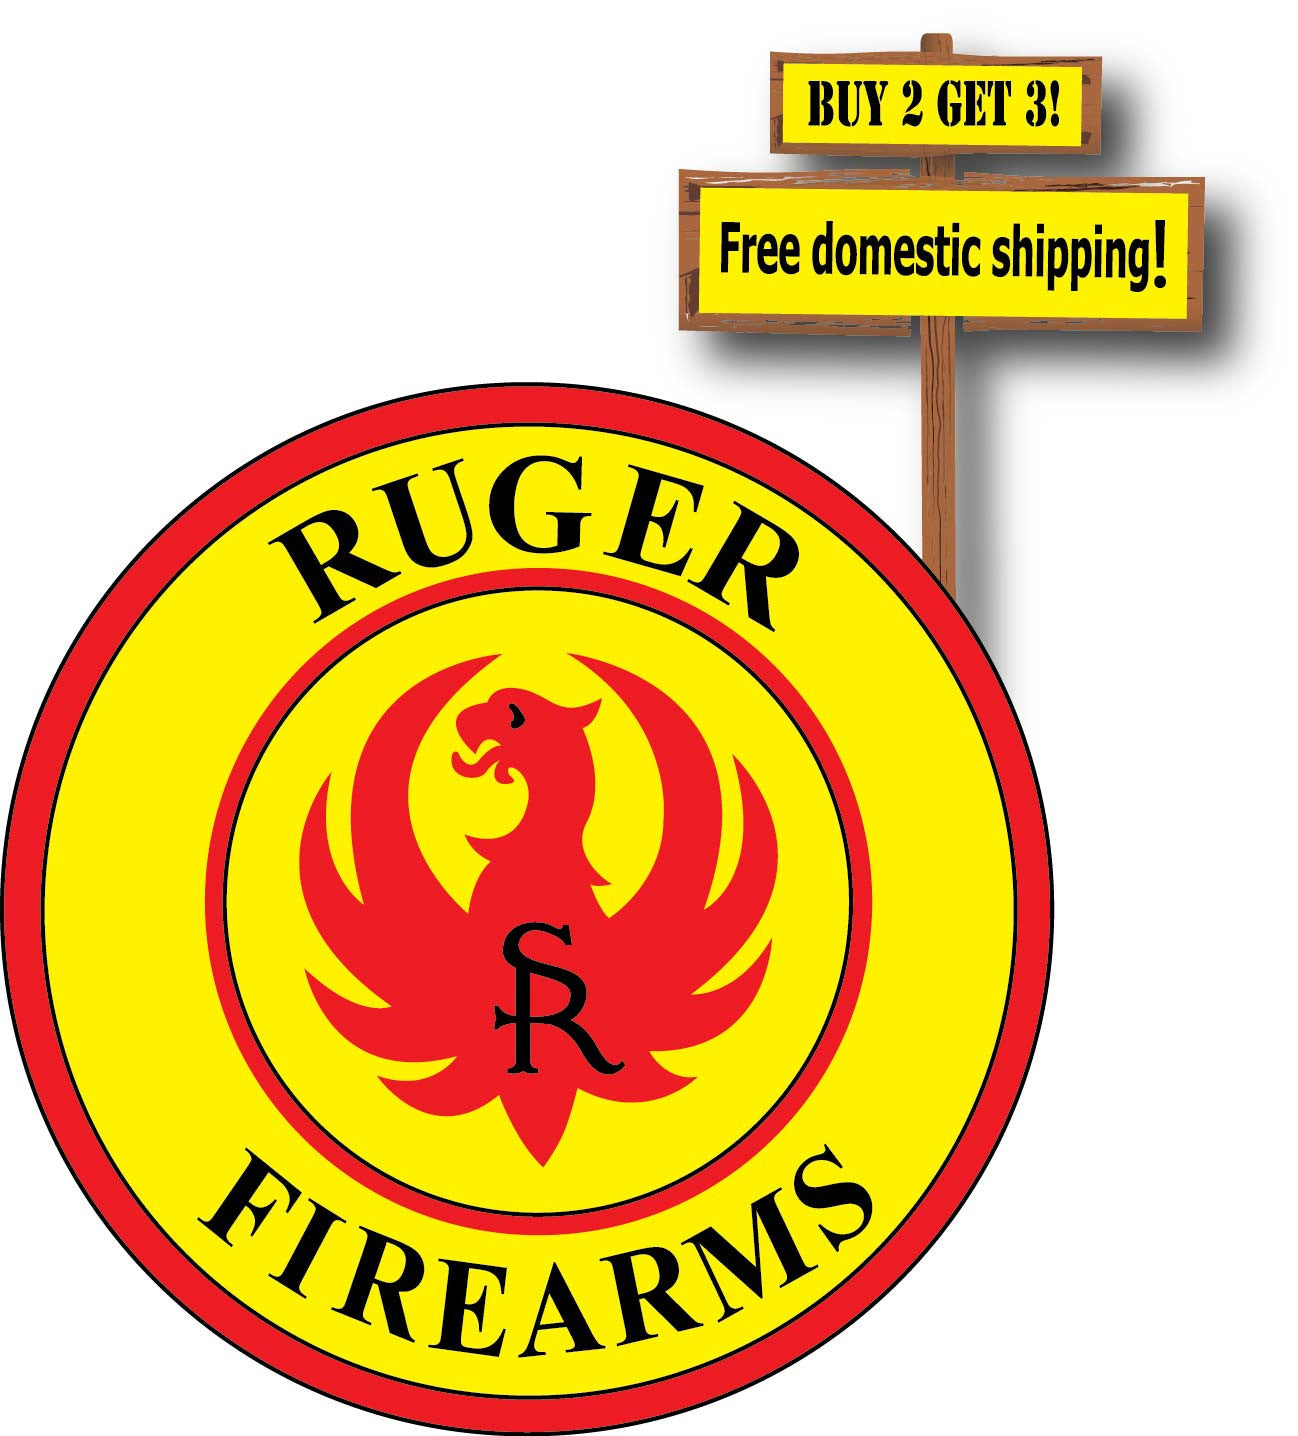 Banksy panda with guns sticker truck stickers logos and vinyl - Ruger Fire Arms Logo Vinyl Defense Guns Weapons Full Color Decal Sticker Buy 2 Get 3 Free Shipping